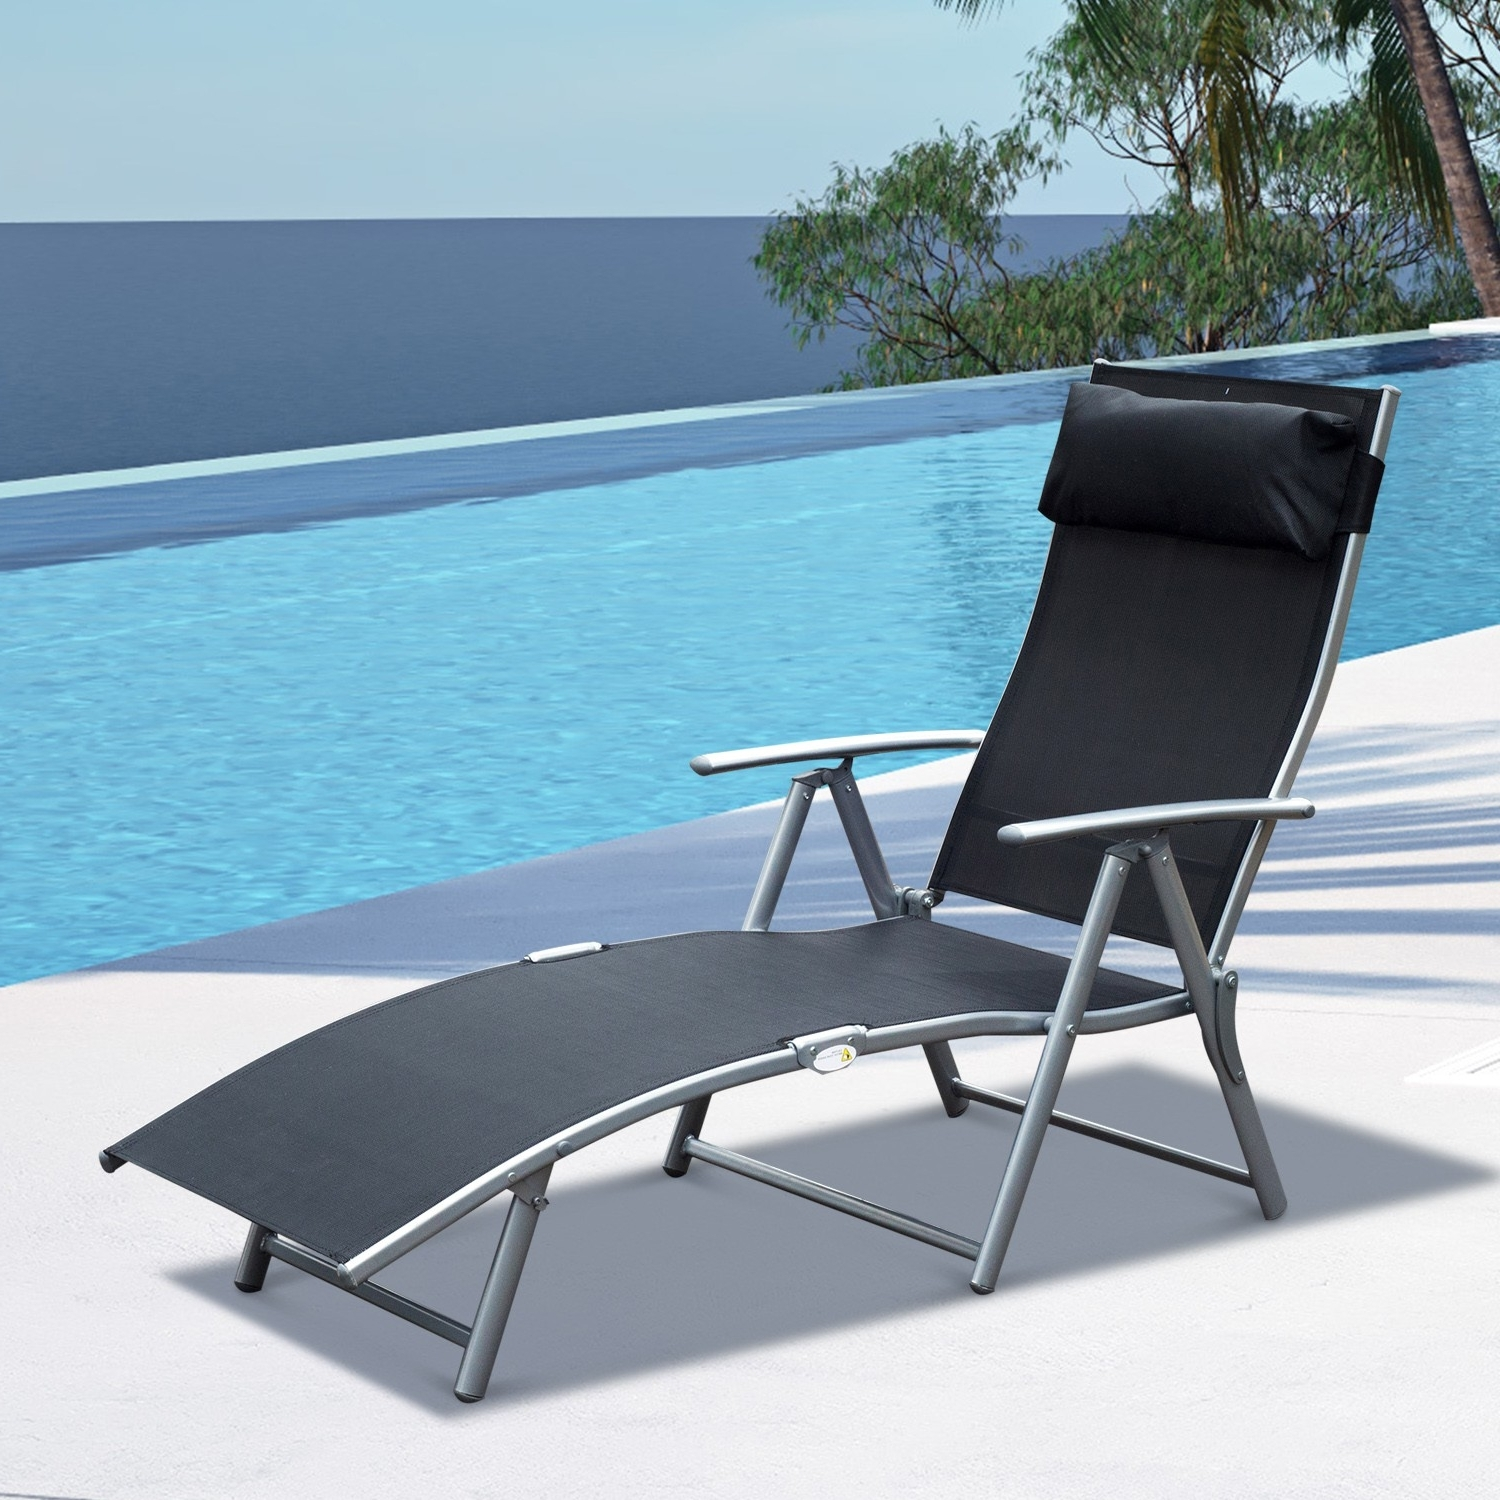 Popular Heavy Duty Chaise Lounge Chairs With Lounge Chair : Chairs Patio Chairs For Large People Lounge Chairs (View 13 of 15)